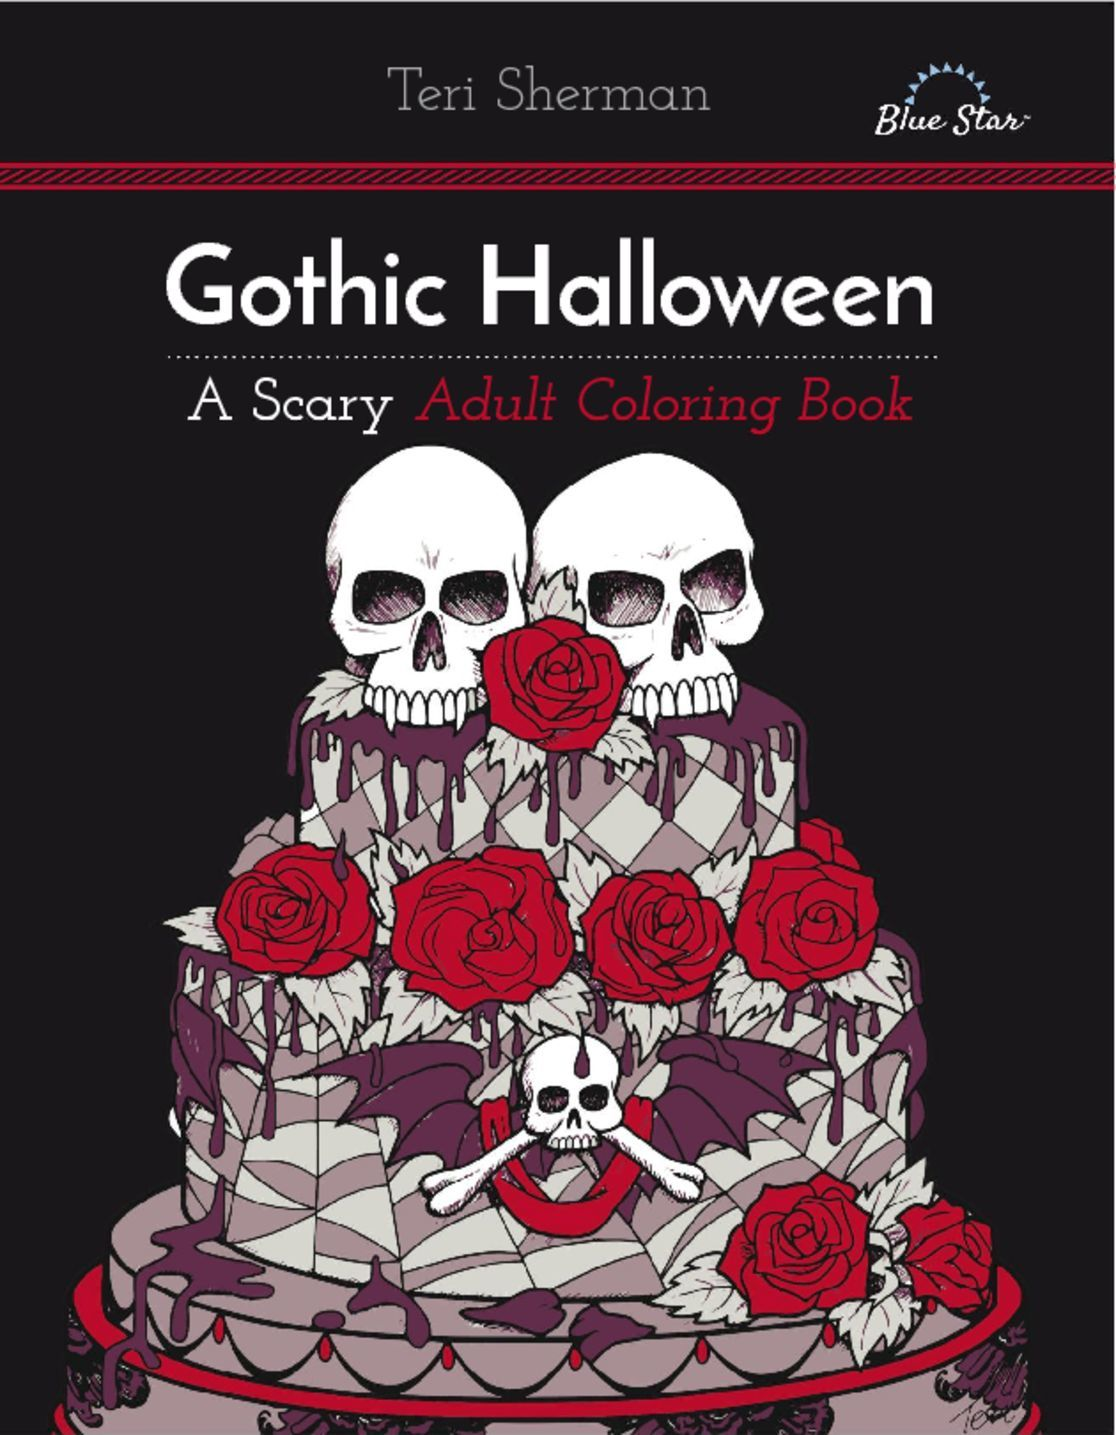 Gothic Halloween A Scary Adult Coloring Book Digital